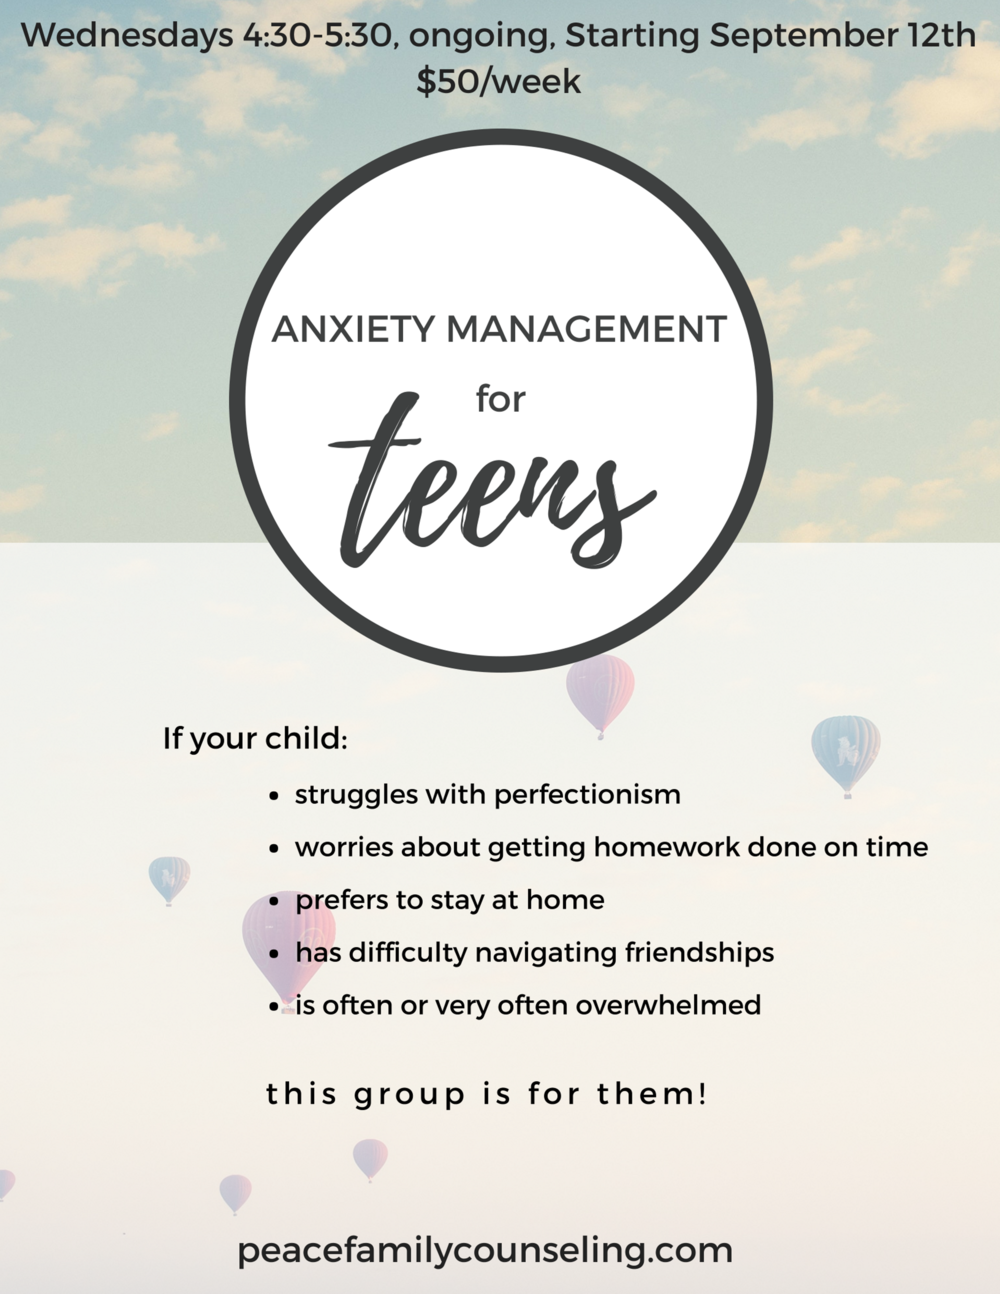 anxiety management for teens- poster final.png